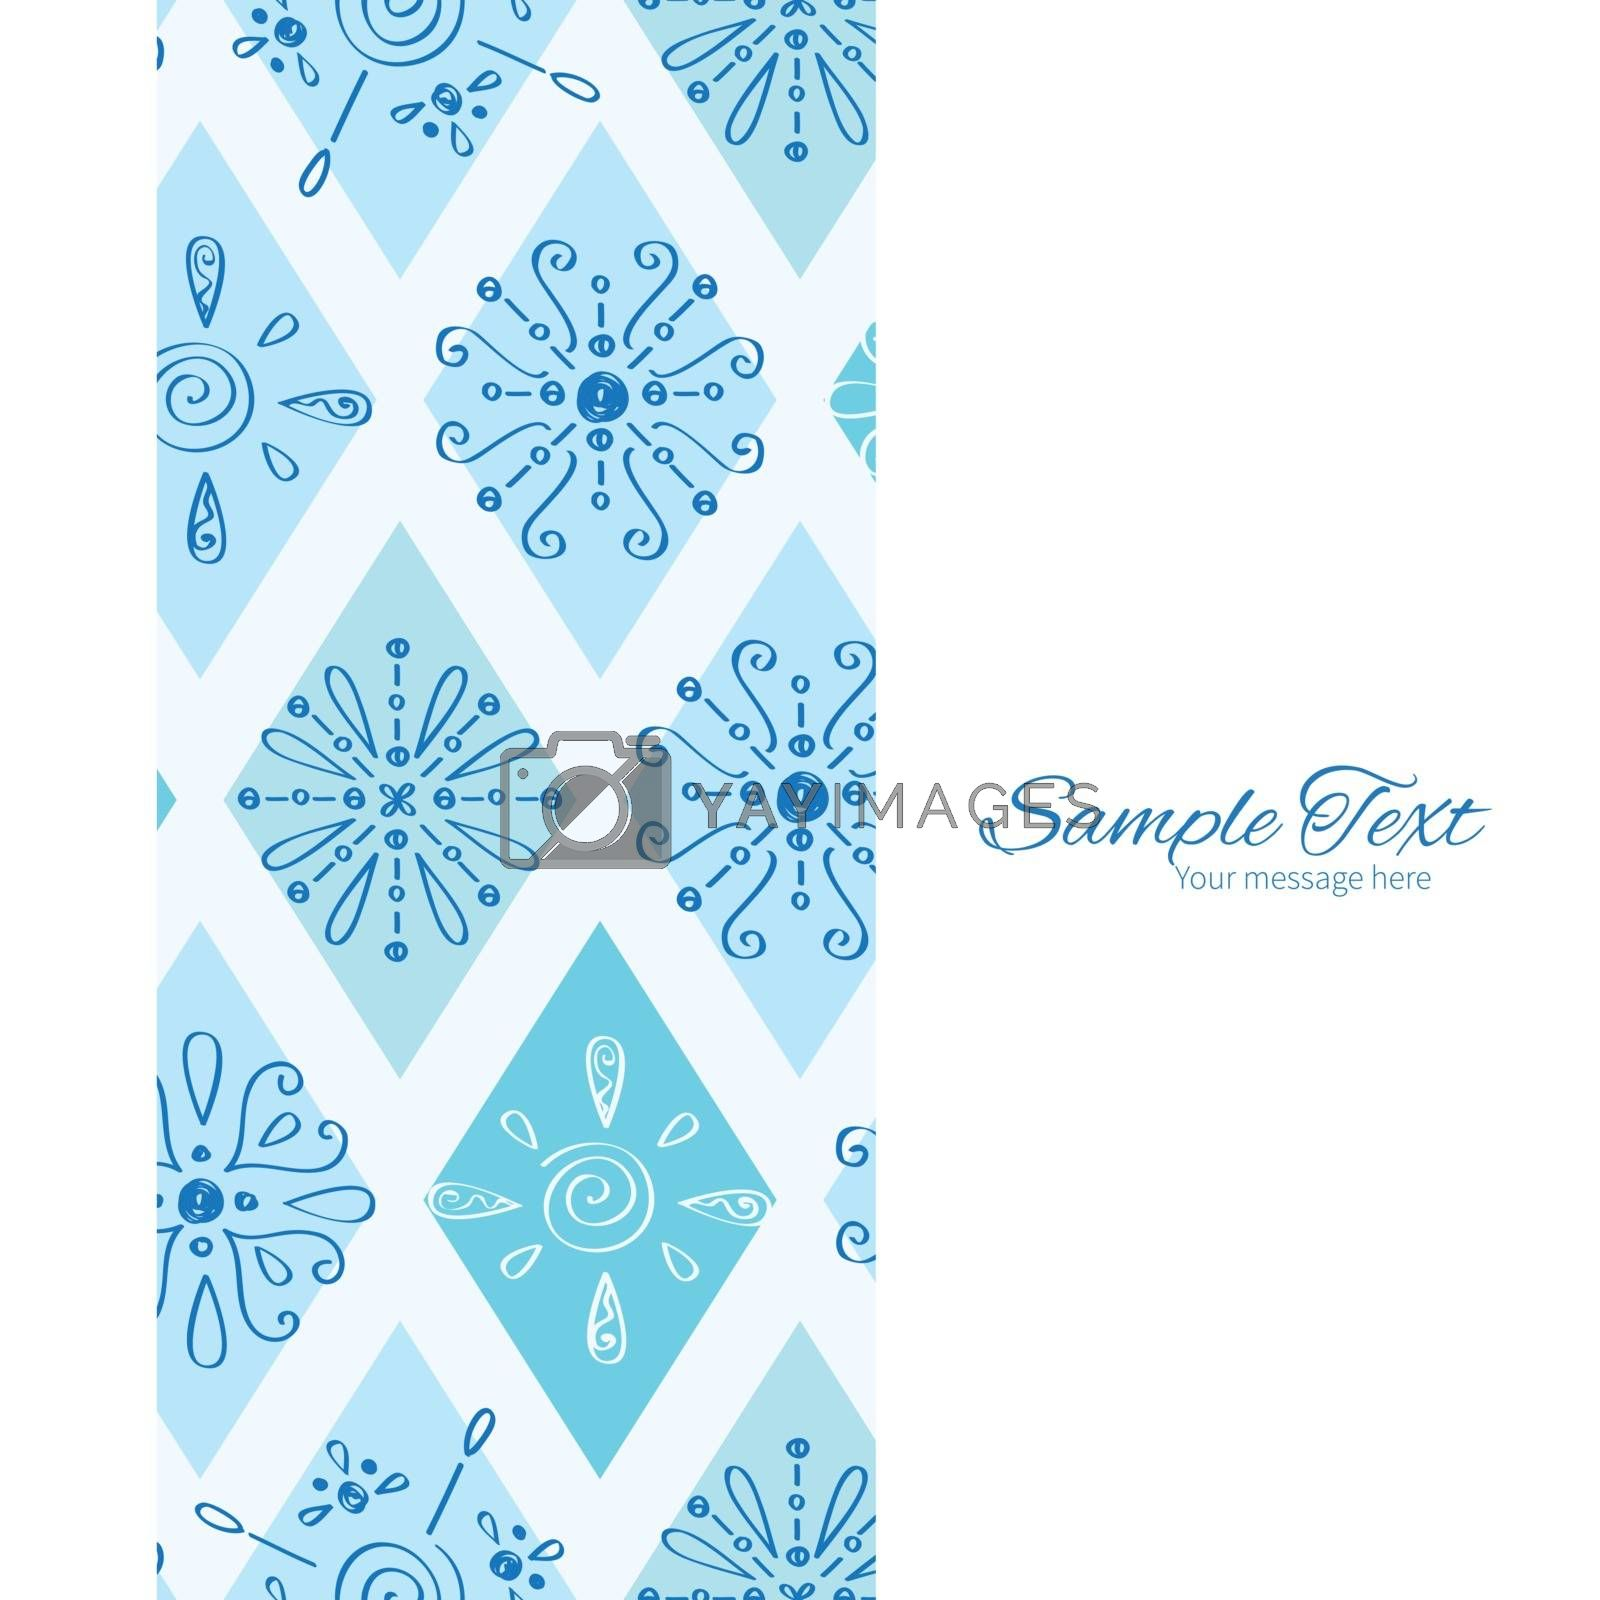 Vector abstract blue doodle rhombus vertical frame seamless pattern background graphic design